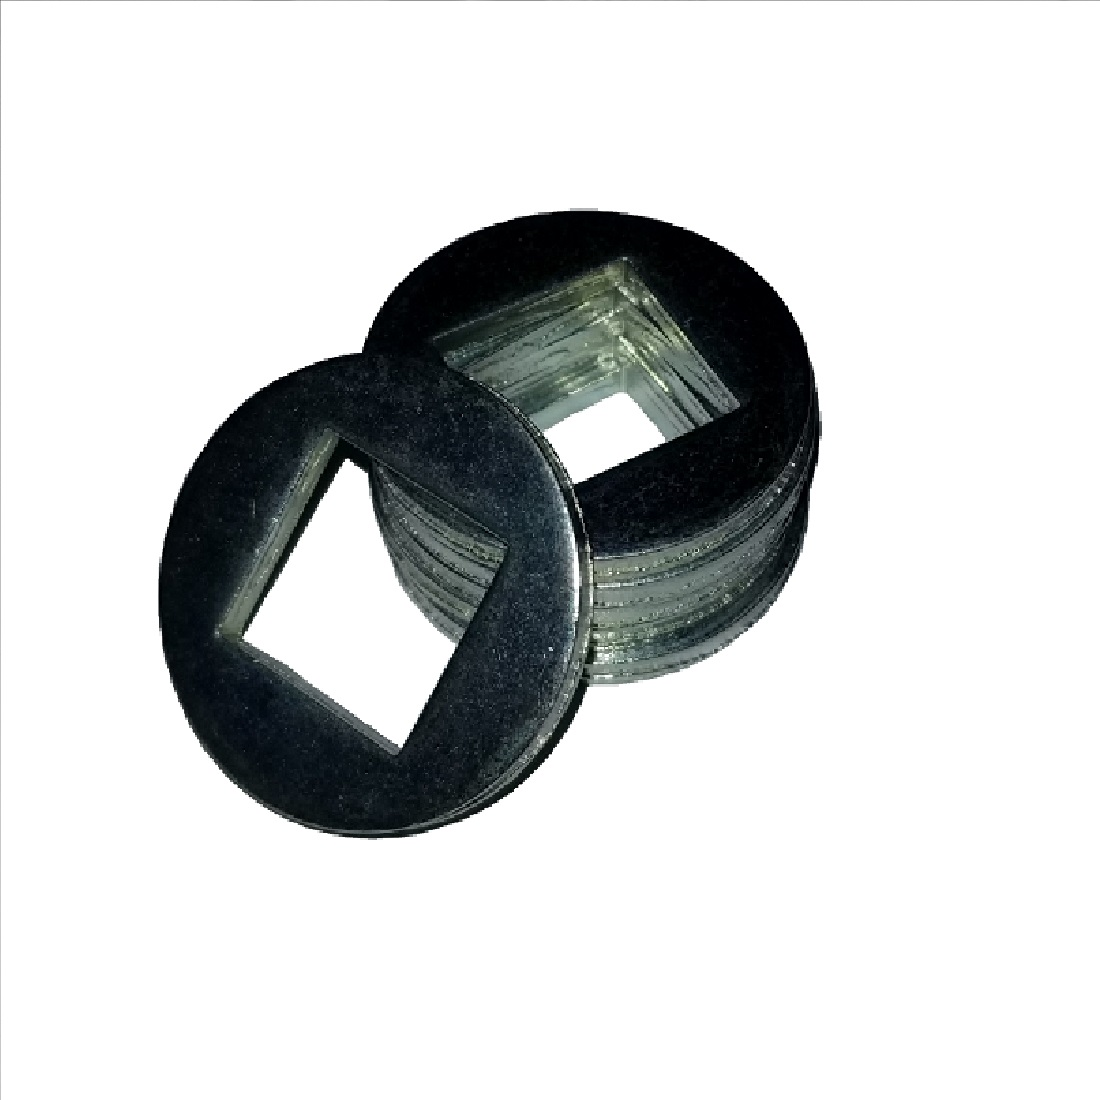 Square ID Washer - 1.187 ID, 4.000 OD, 0.105 Thick, Low Carbon Steel - Soft